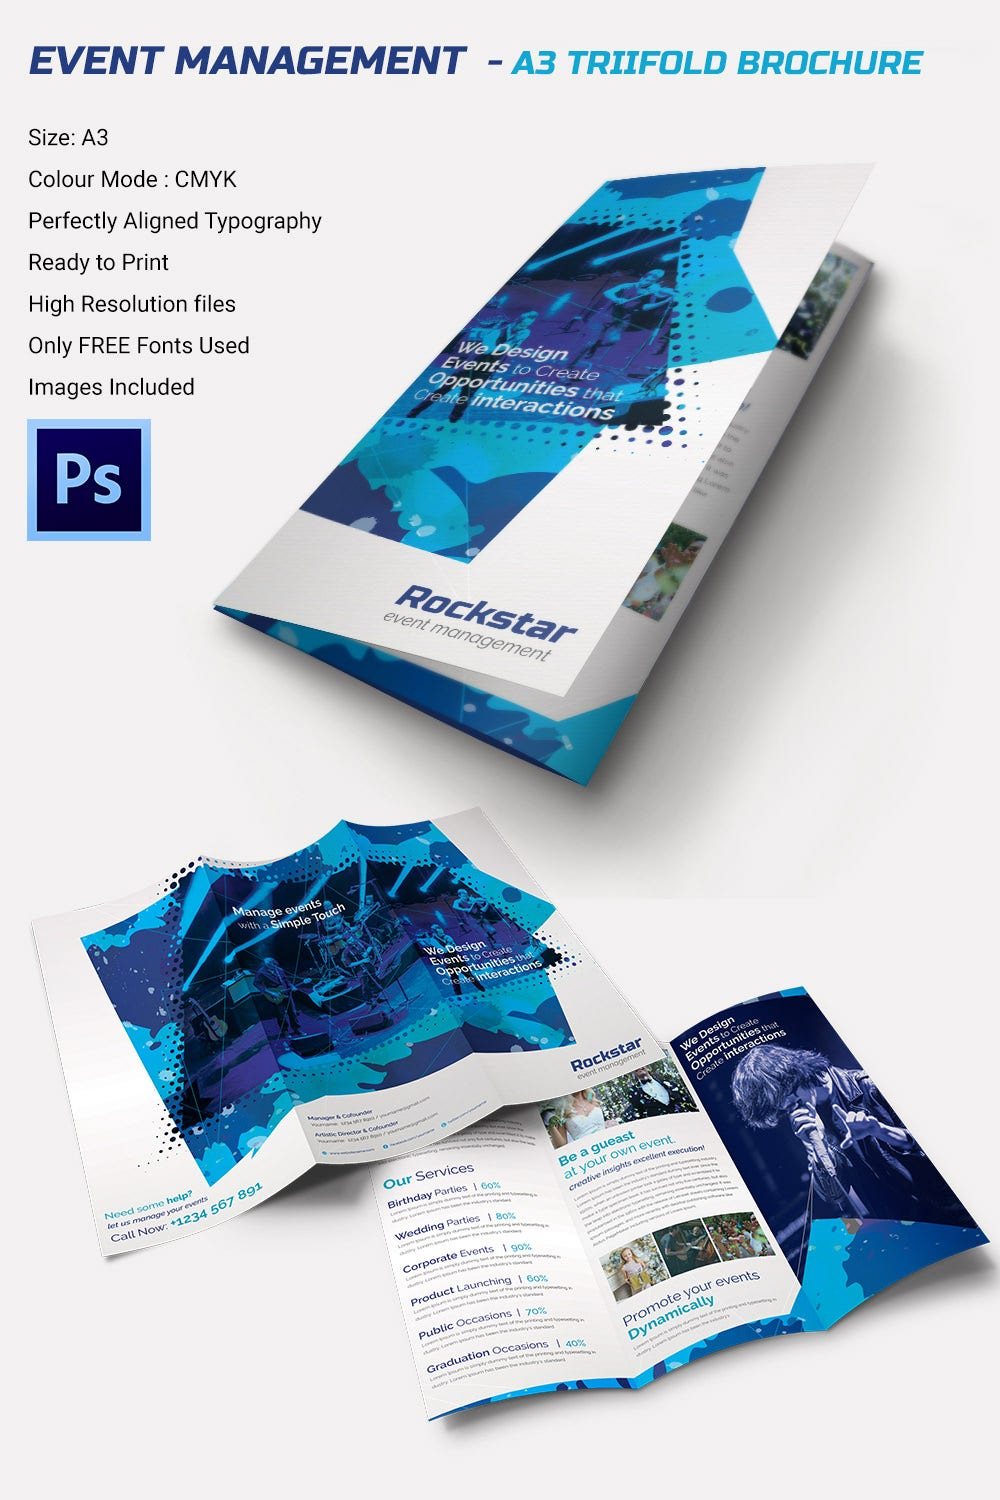 16 event brochure templates psd designs free for Company brochure design templates